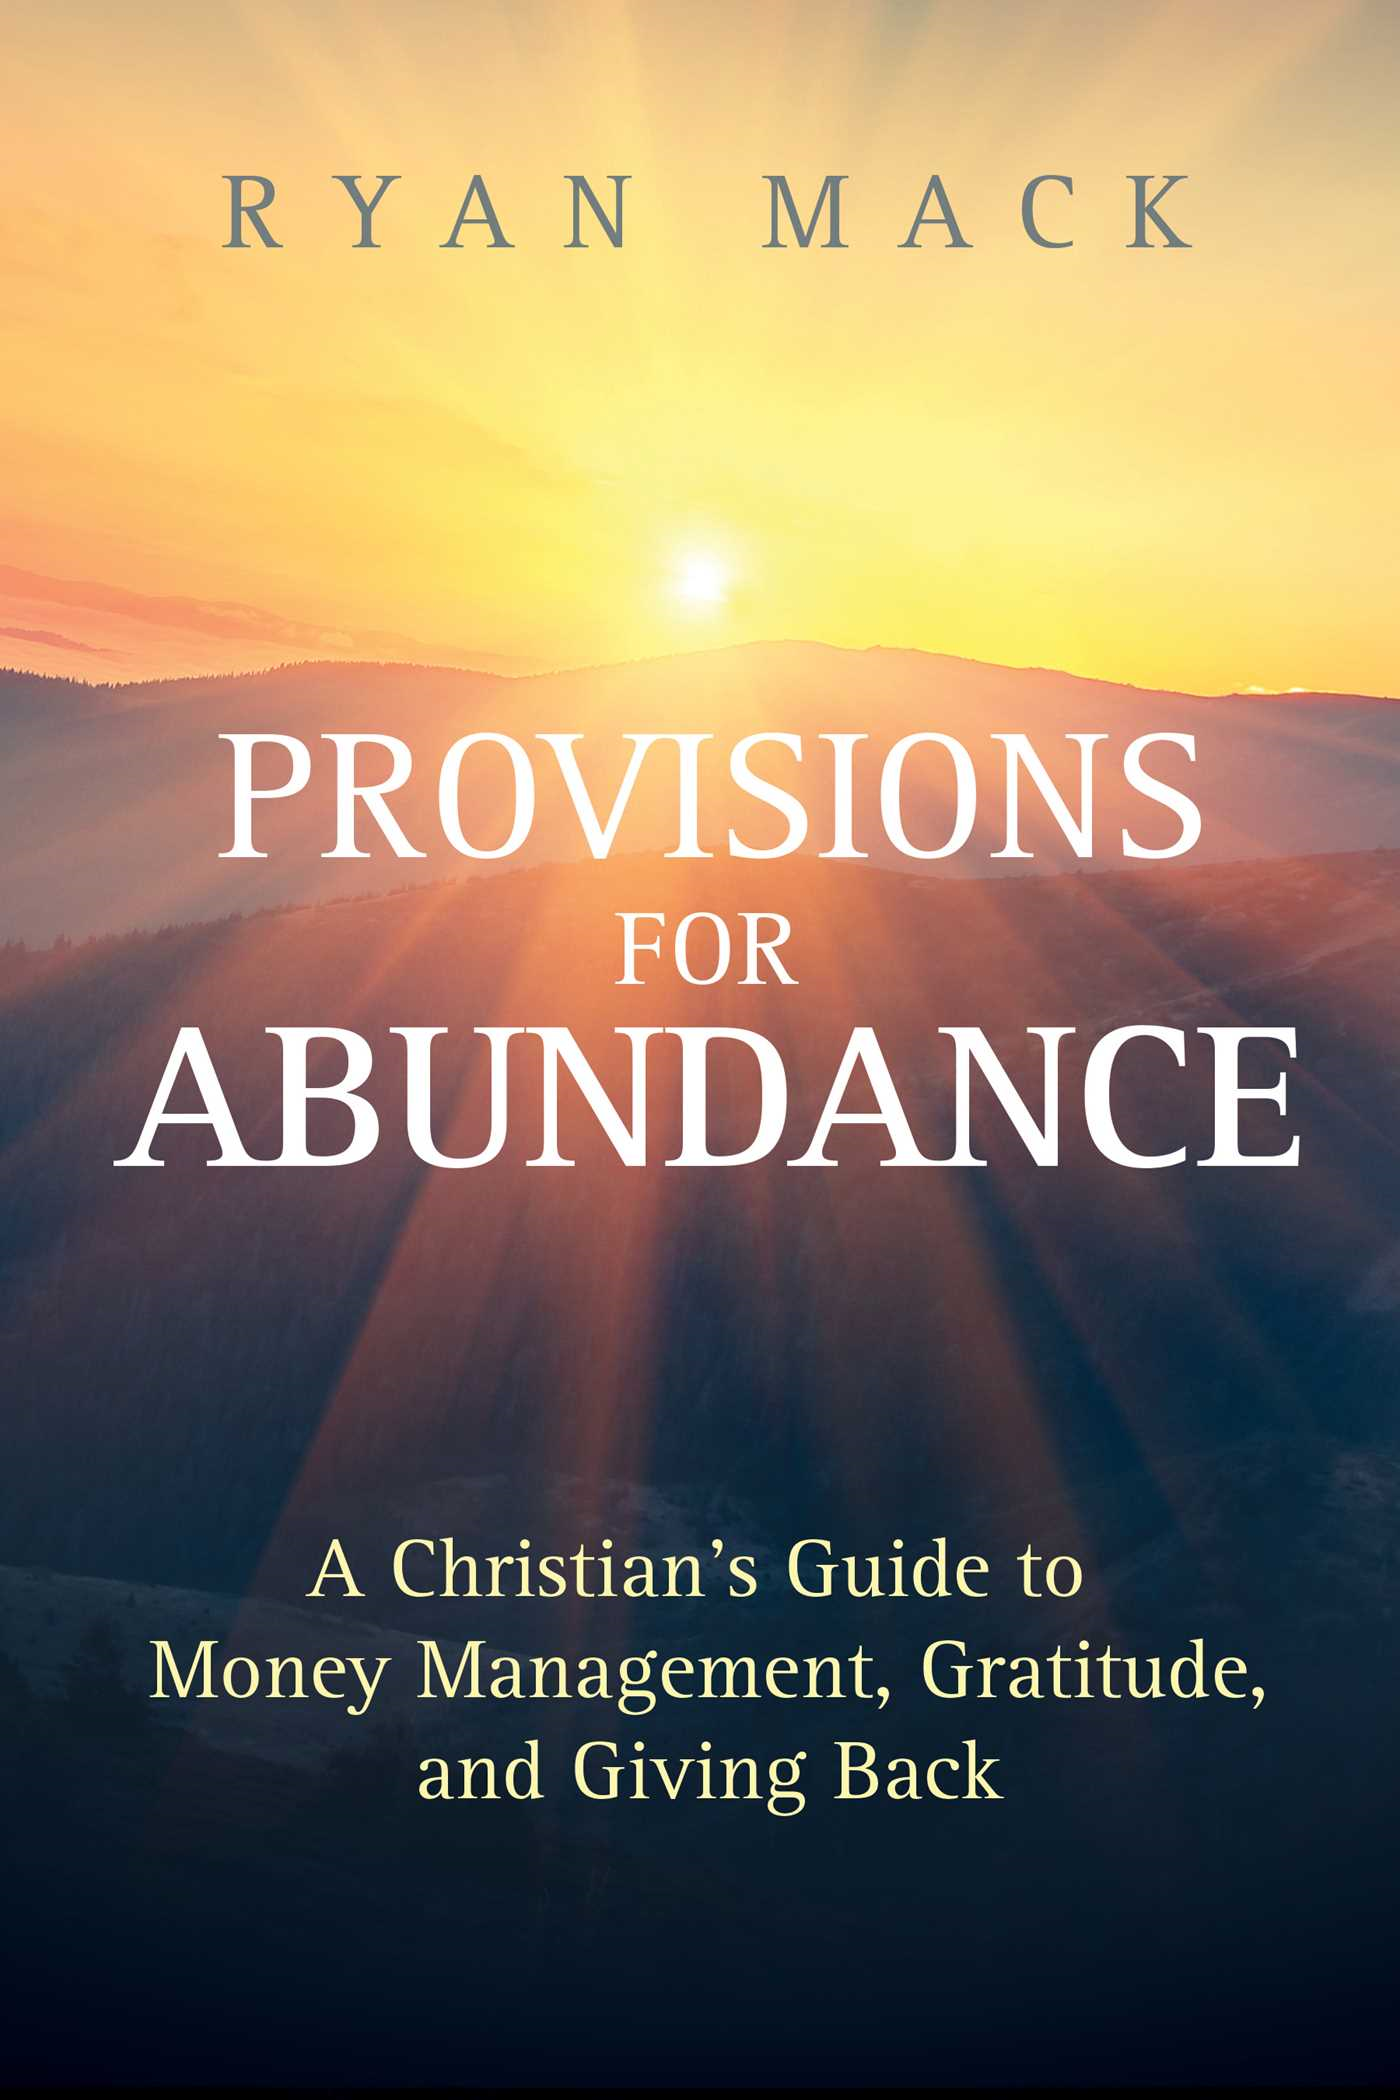 Provisions for Abundance